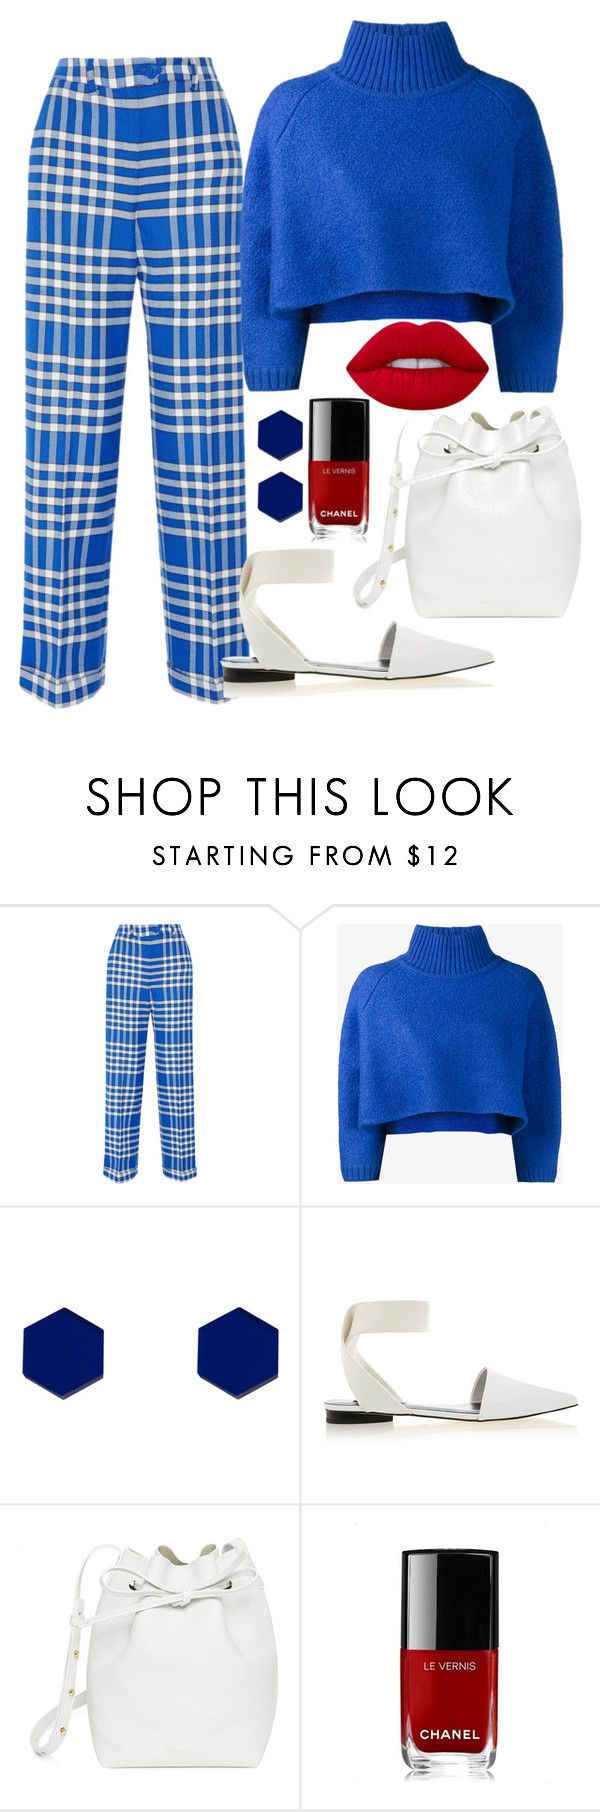 """""""Blue."""" by emiam ❤ liked on Polyvore featuring Jacquemus, Vika Gazinskaya, Wolf & Moon, Senso, Mansur Gavriel, Chanel and Lime Crime"""